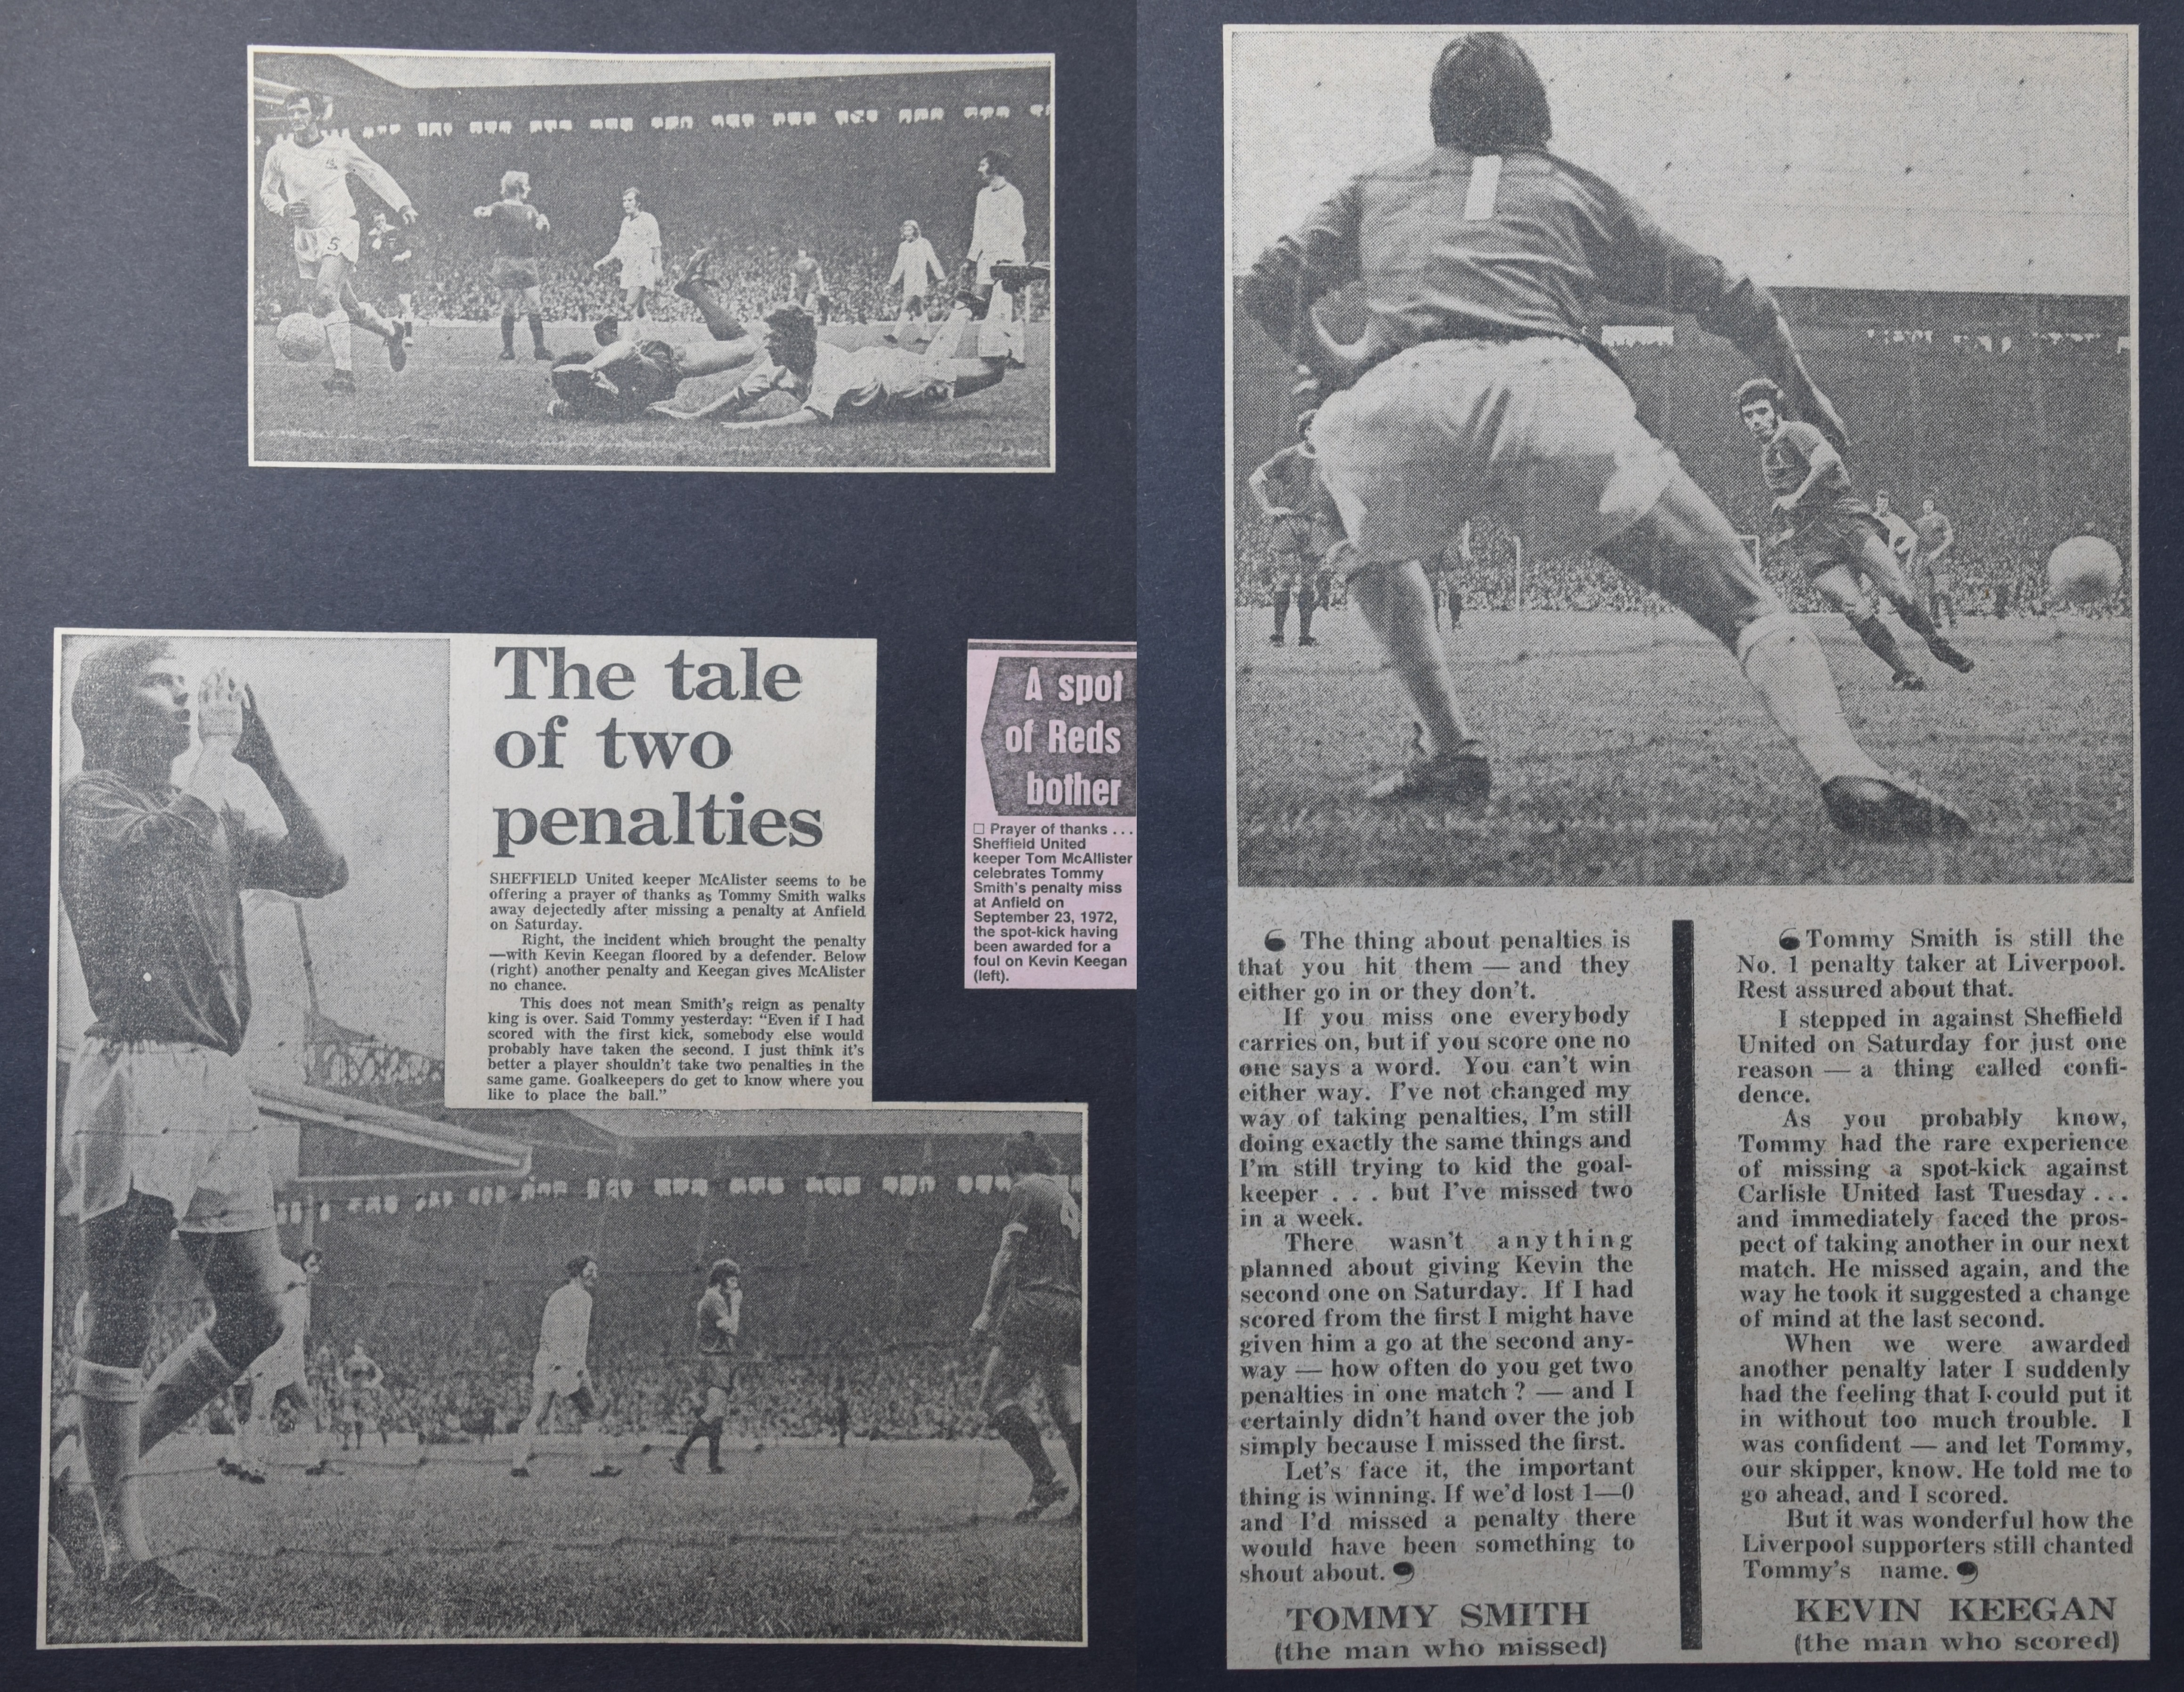 The tale of two penalties - 23 September 1972